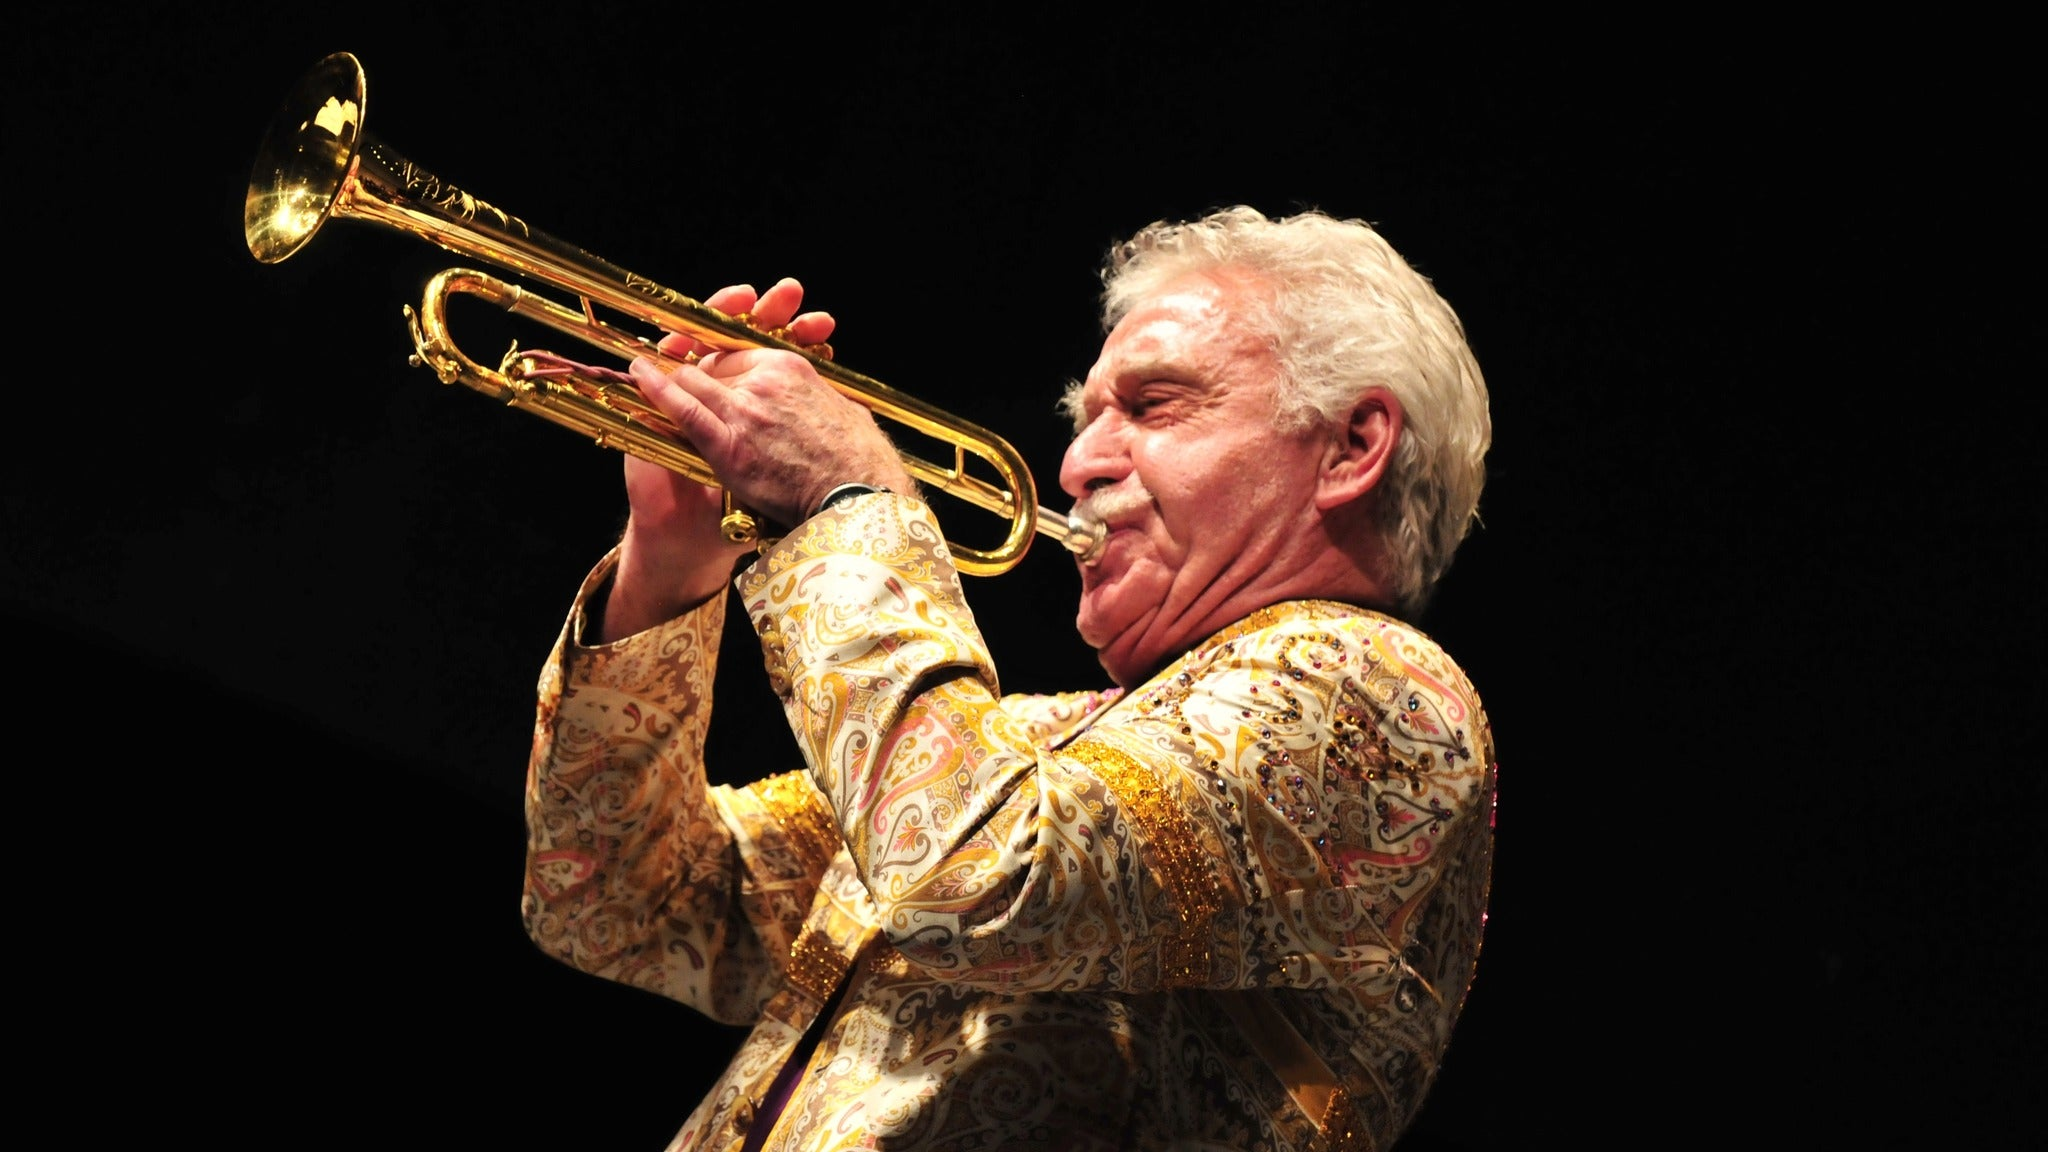 Doc Severinsen at Au-Rene Theater at the Broward Center - Ft Lauderdale, FL 33312